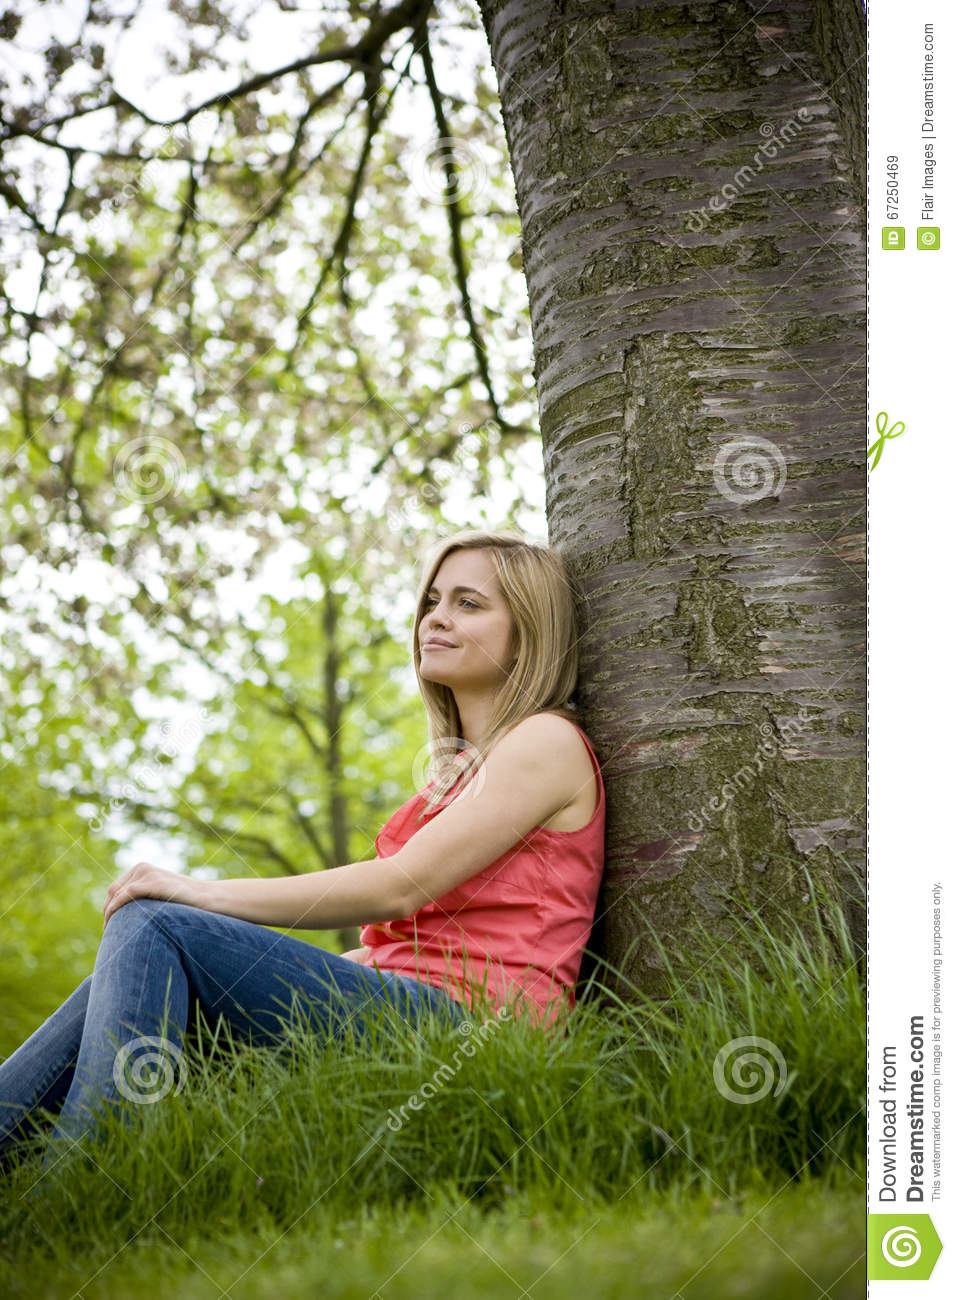 A young woman sitting beneath a tree, looking thoughtful